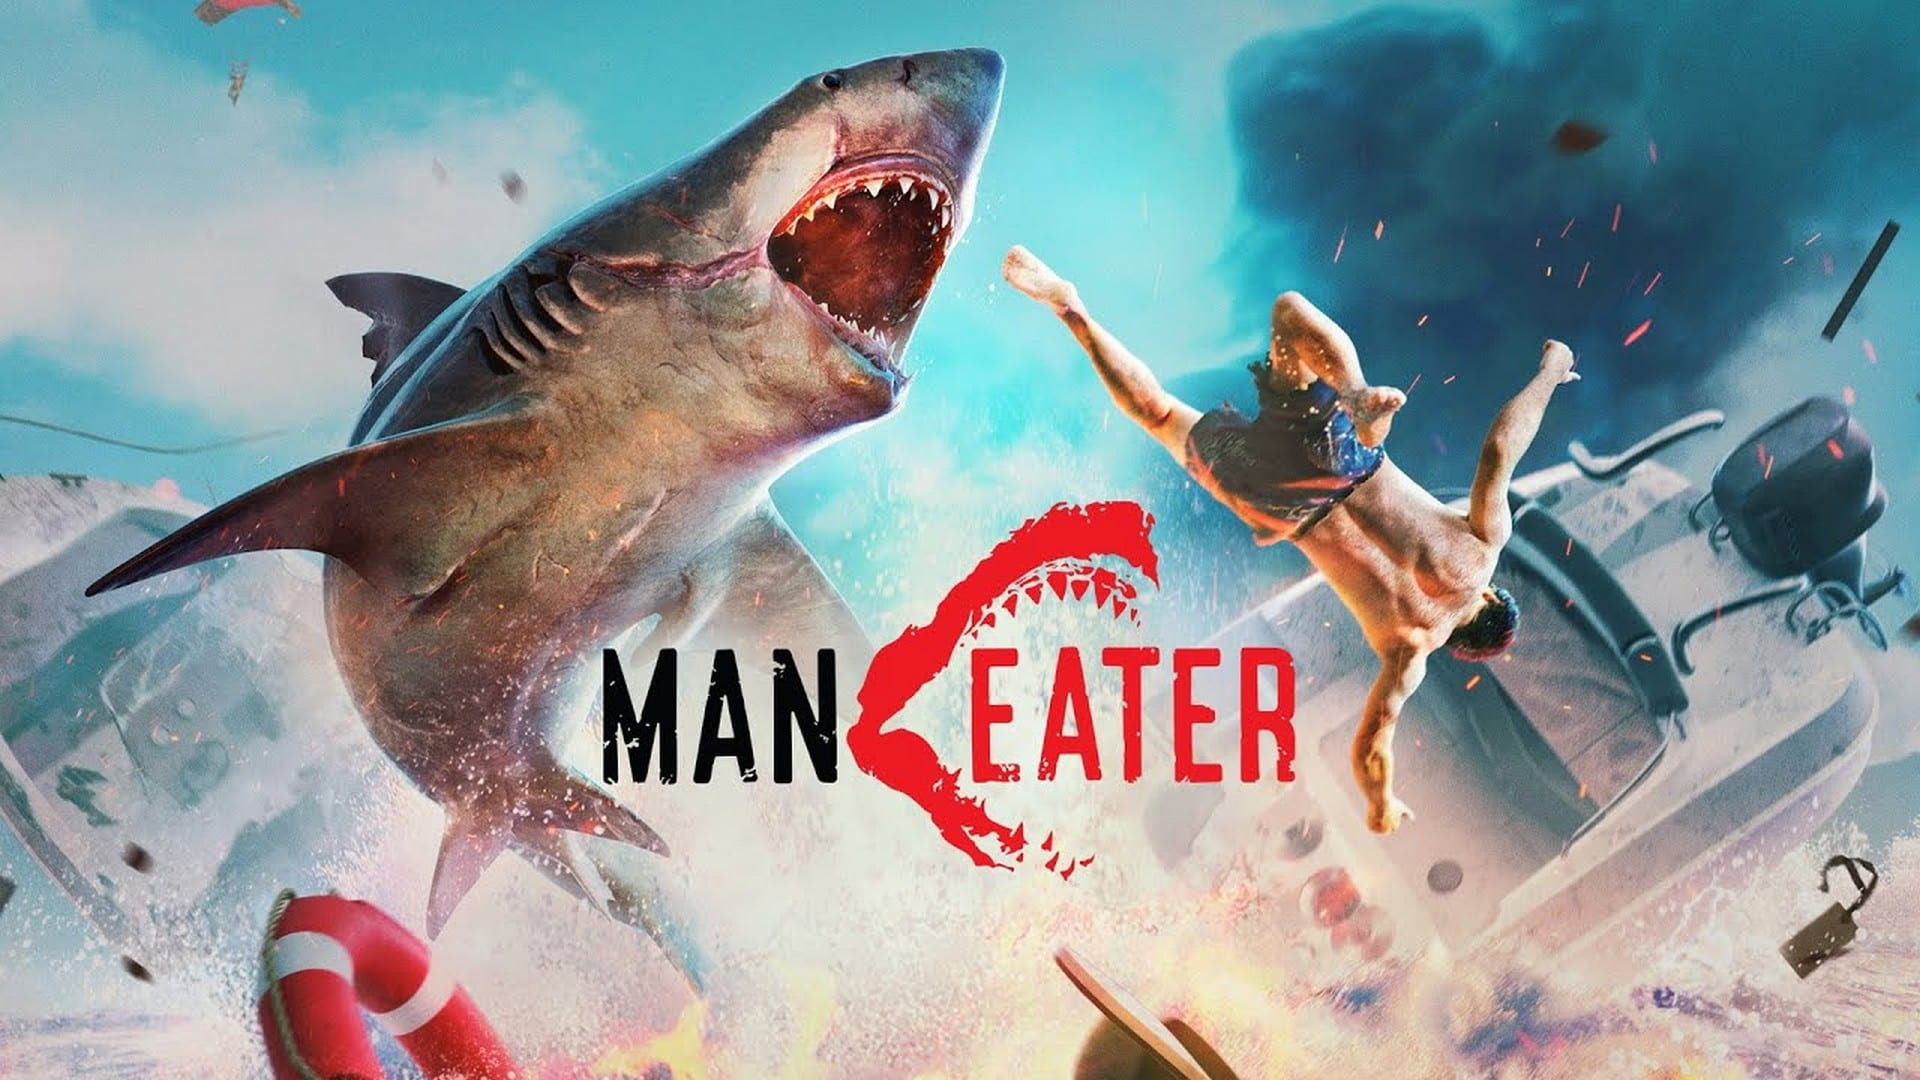 Maneater Coming Soon To PlayStation 4, Xbox One & PC On May 22, 2020